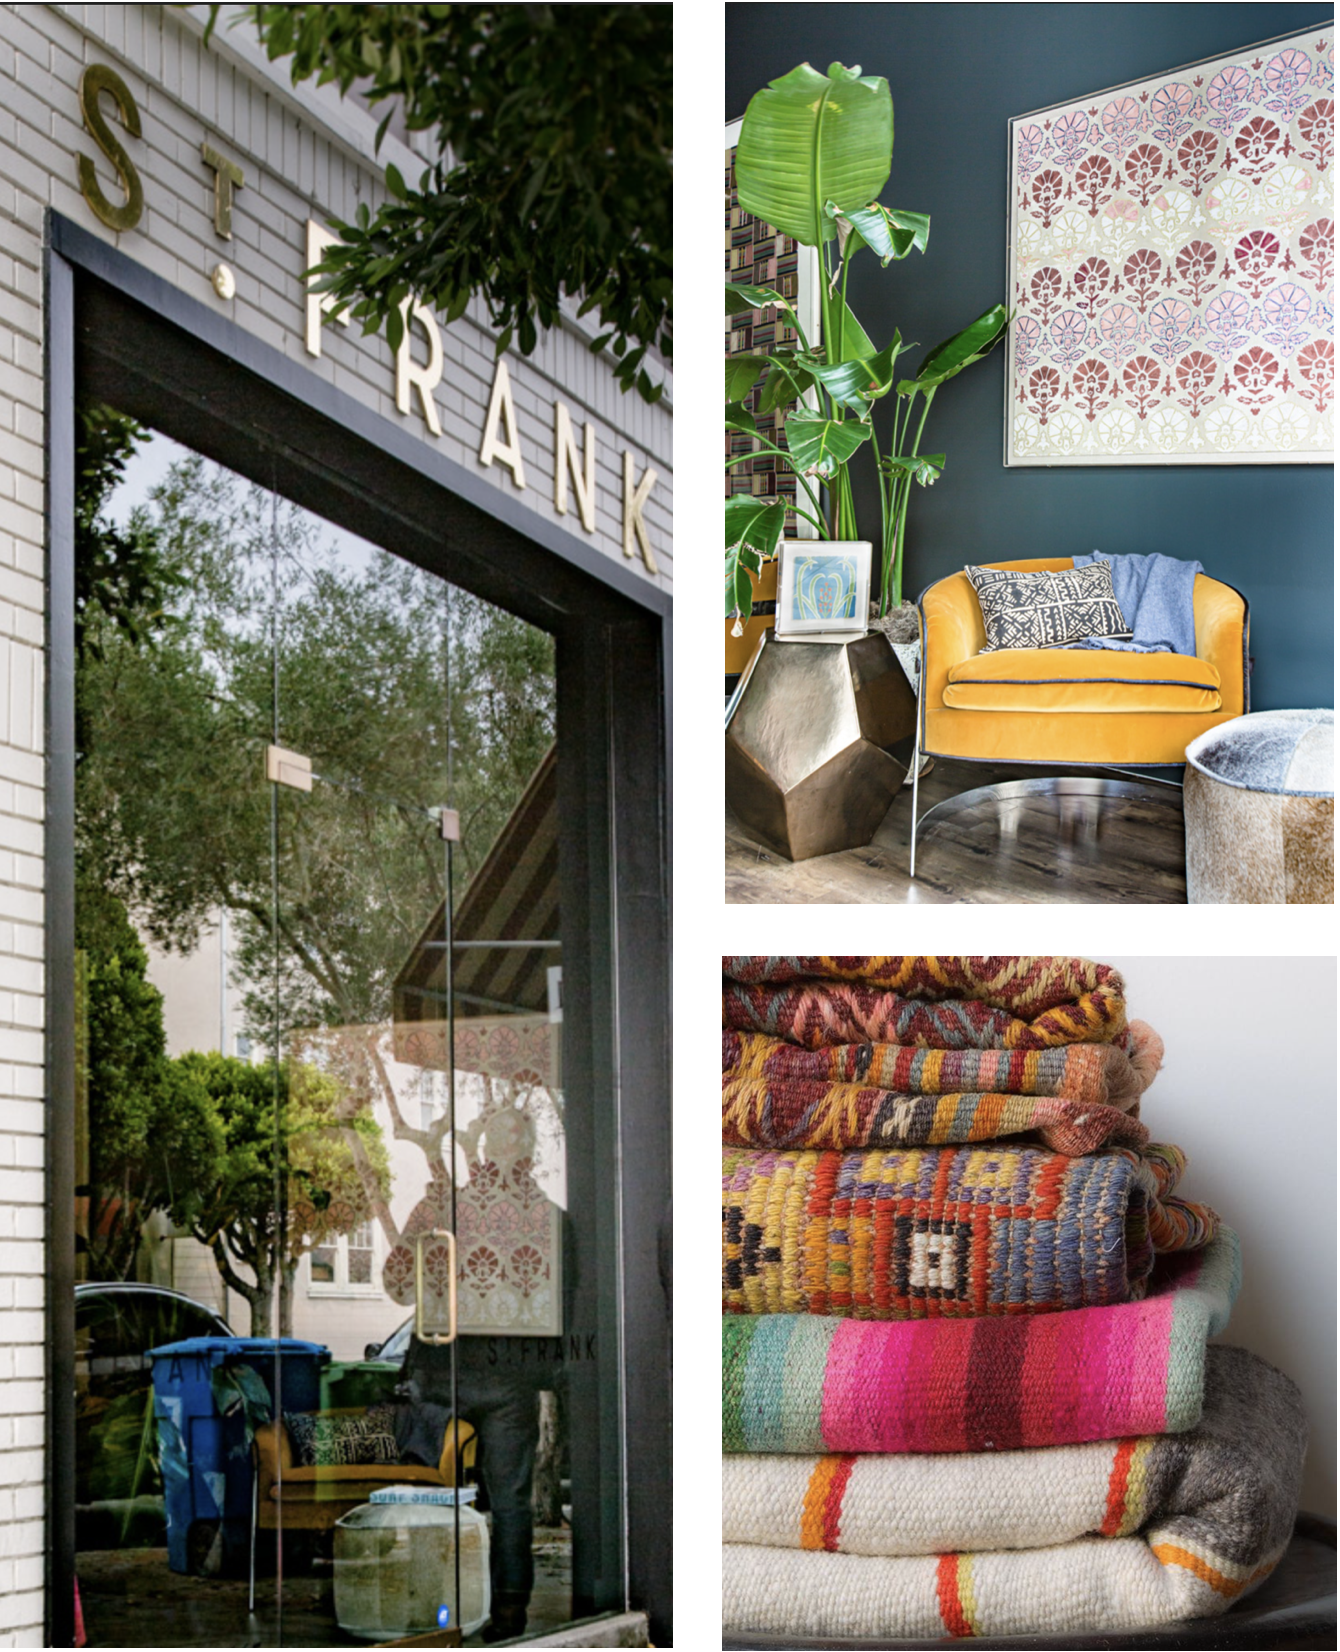 St Frank - St Frank partners with artisans around the world to feature a unique array of heritage crafts with a story. Handmade global textiles by the yard, from mud cloth to kilim and beyond, get our creative juices flowing… wondering what fantastic piece we can revitalize next, or is a custom pillow project in store?Must Buy: a globally-inspired fabric for a Revitaliste custom pillow project, a tabletop curiosity for your favorite traveler, a cookbook of worldly cuisinevisit website